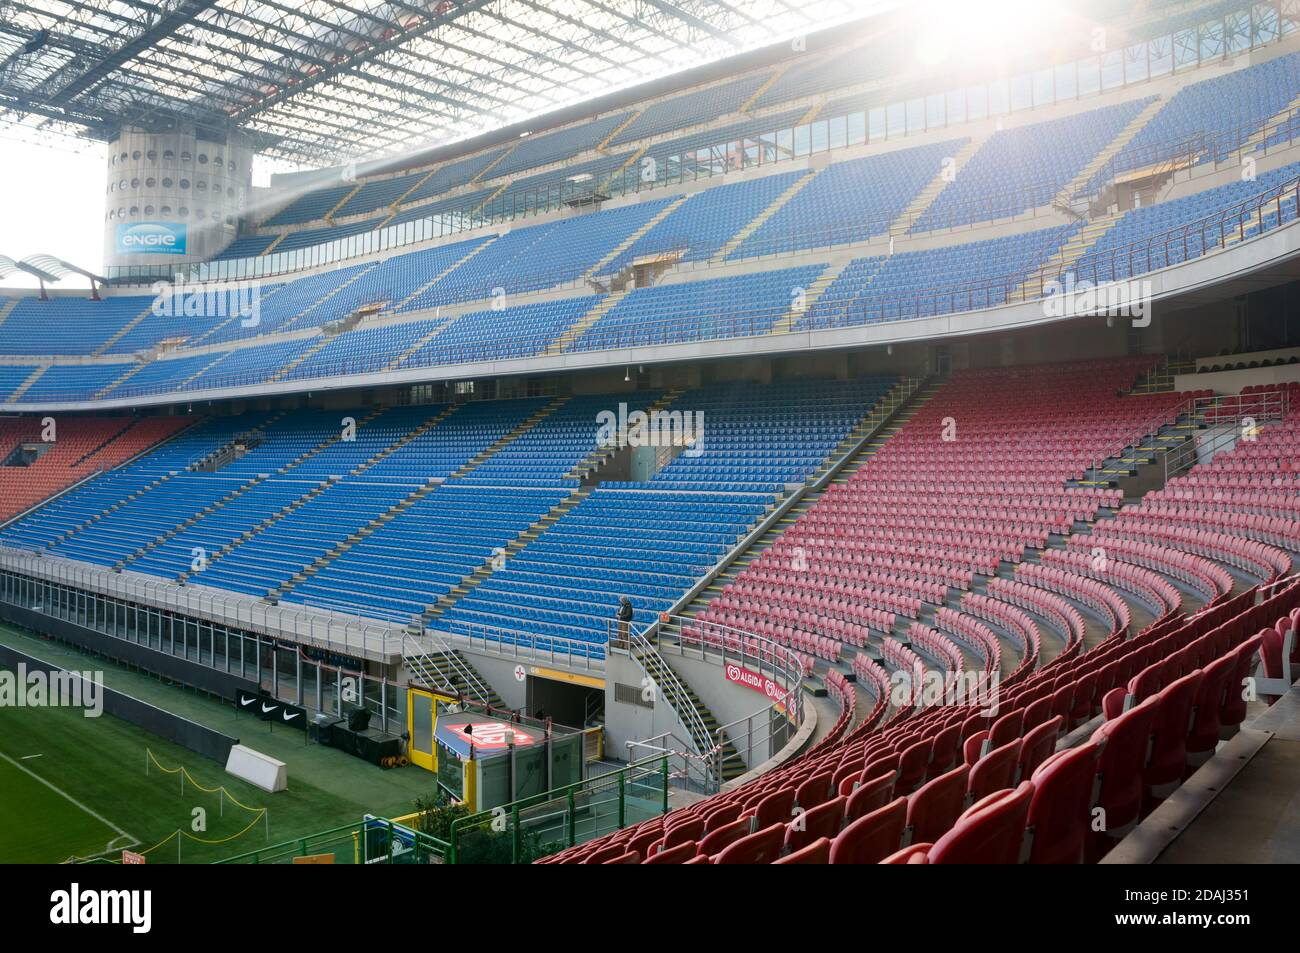 Empty stands of blue and red in the stadium Giuseppe Meazza or San Siro, built in 1925. Milan. Italy. Stock Photo